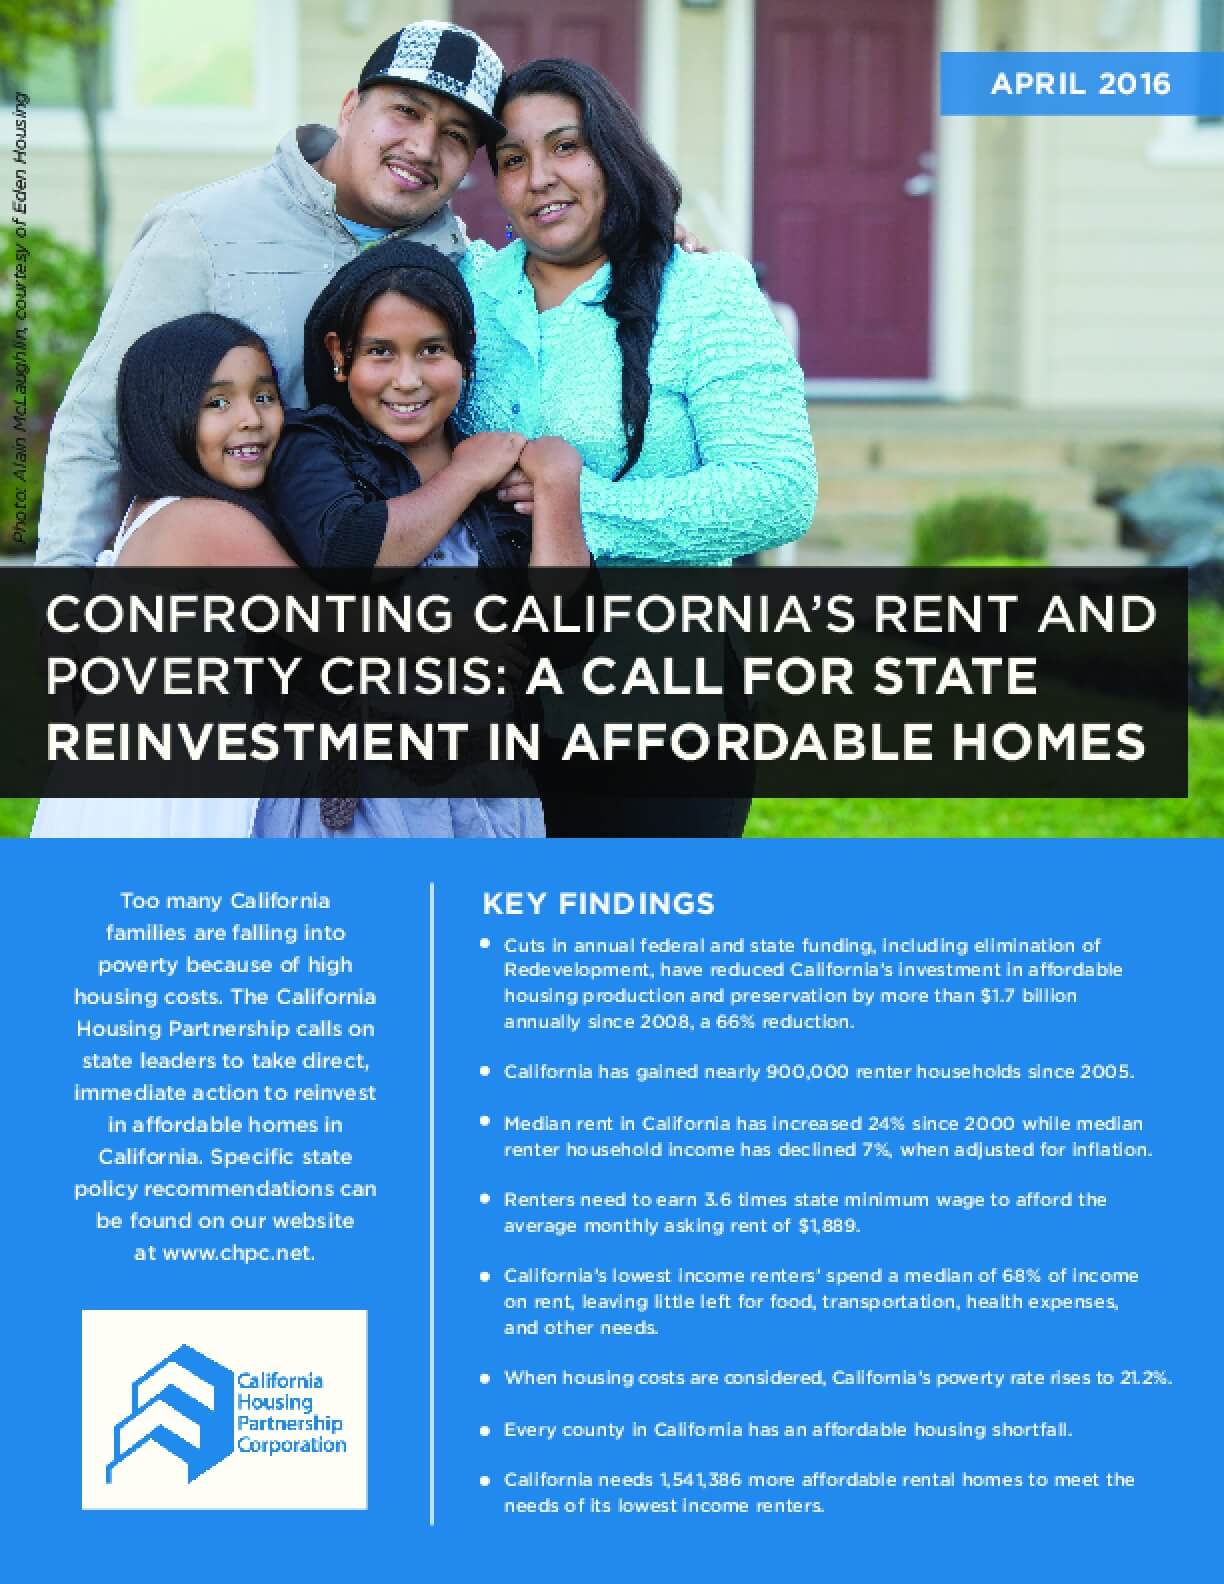 Confronting California's Rent and Poverty Crisis: A Call for State Reinvestment in Affordable Homes